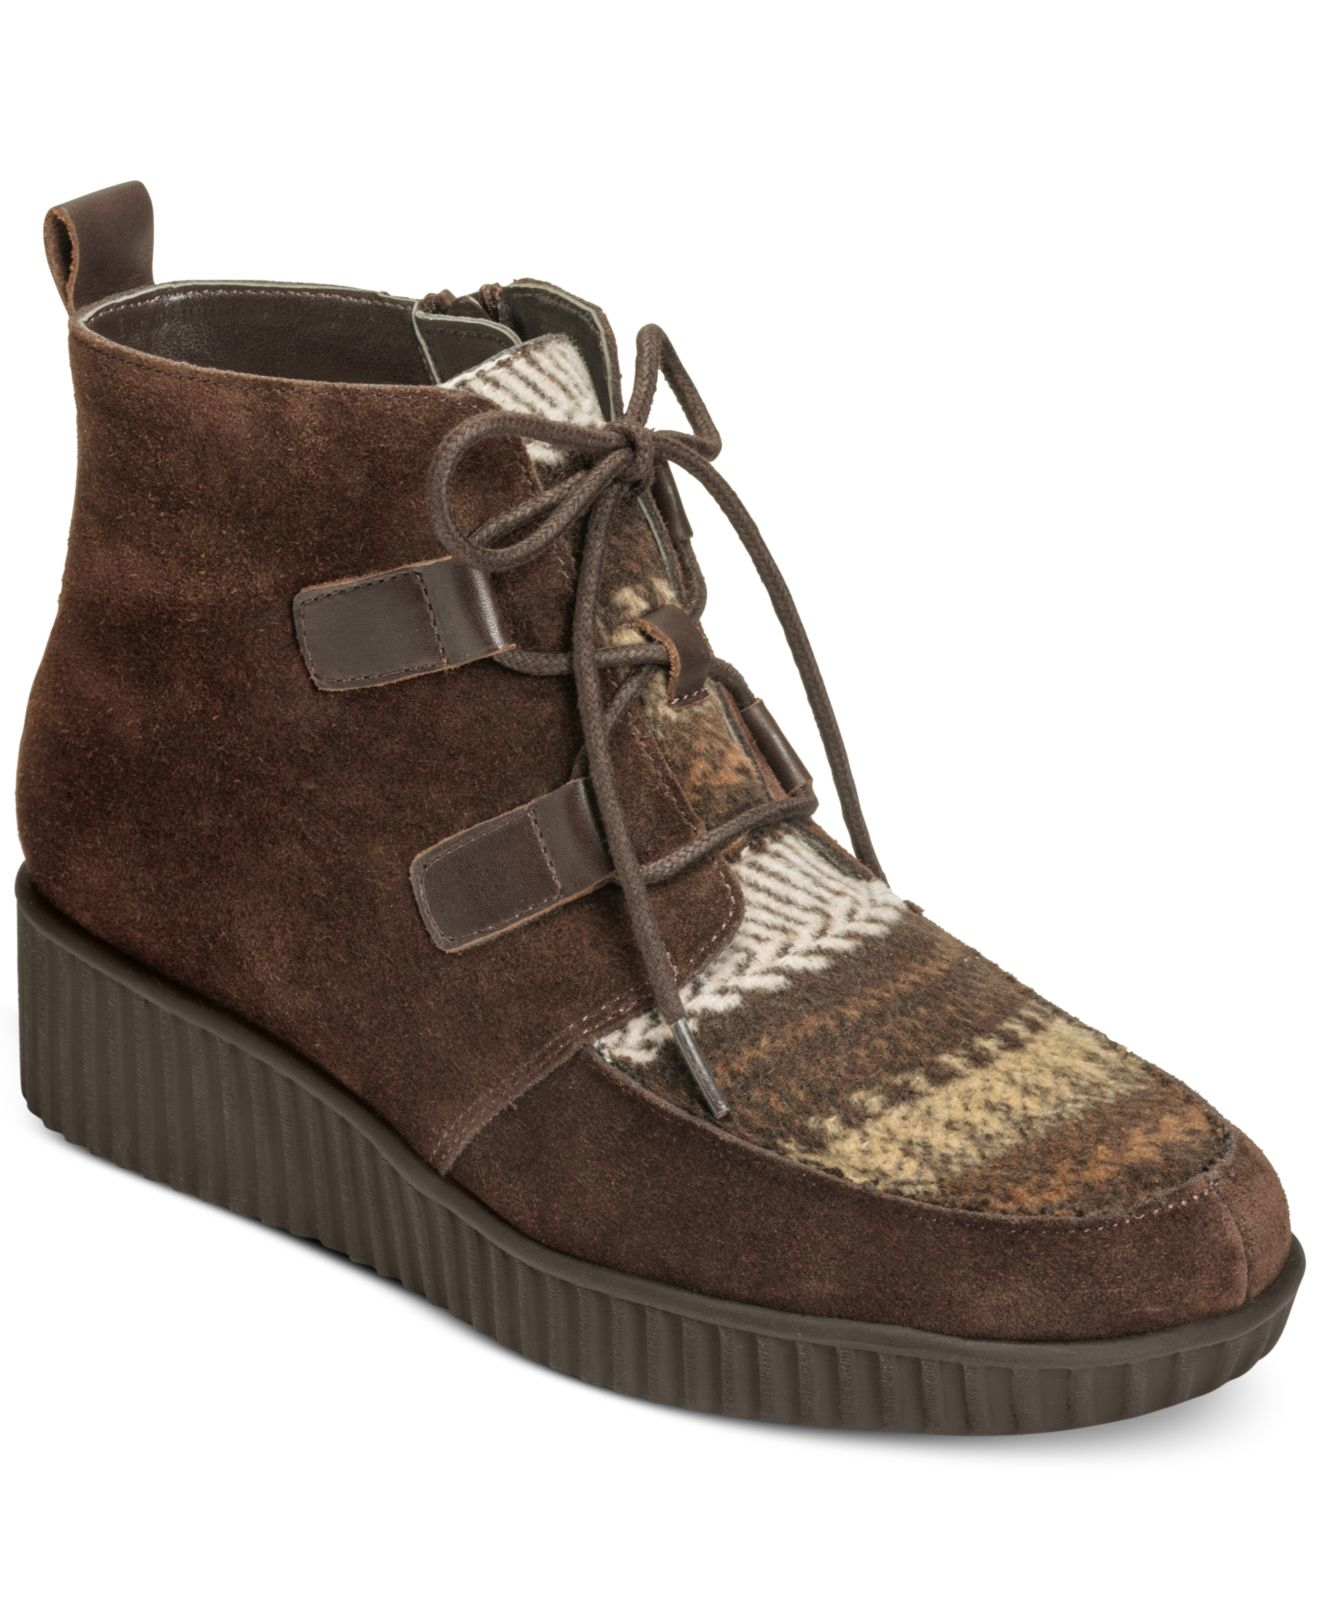 Shop the latest collections of designer Boots for women at oraplanrans.tk Browns Shoes.